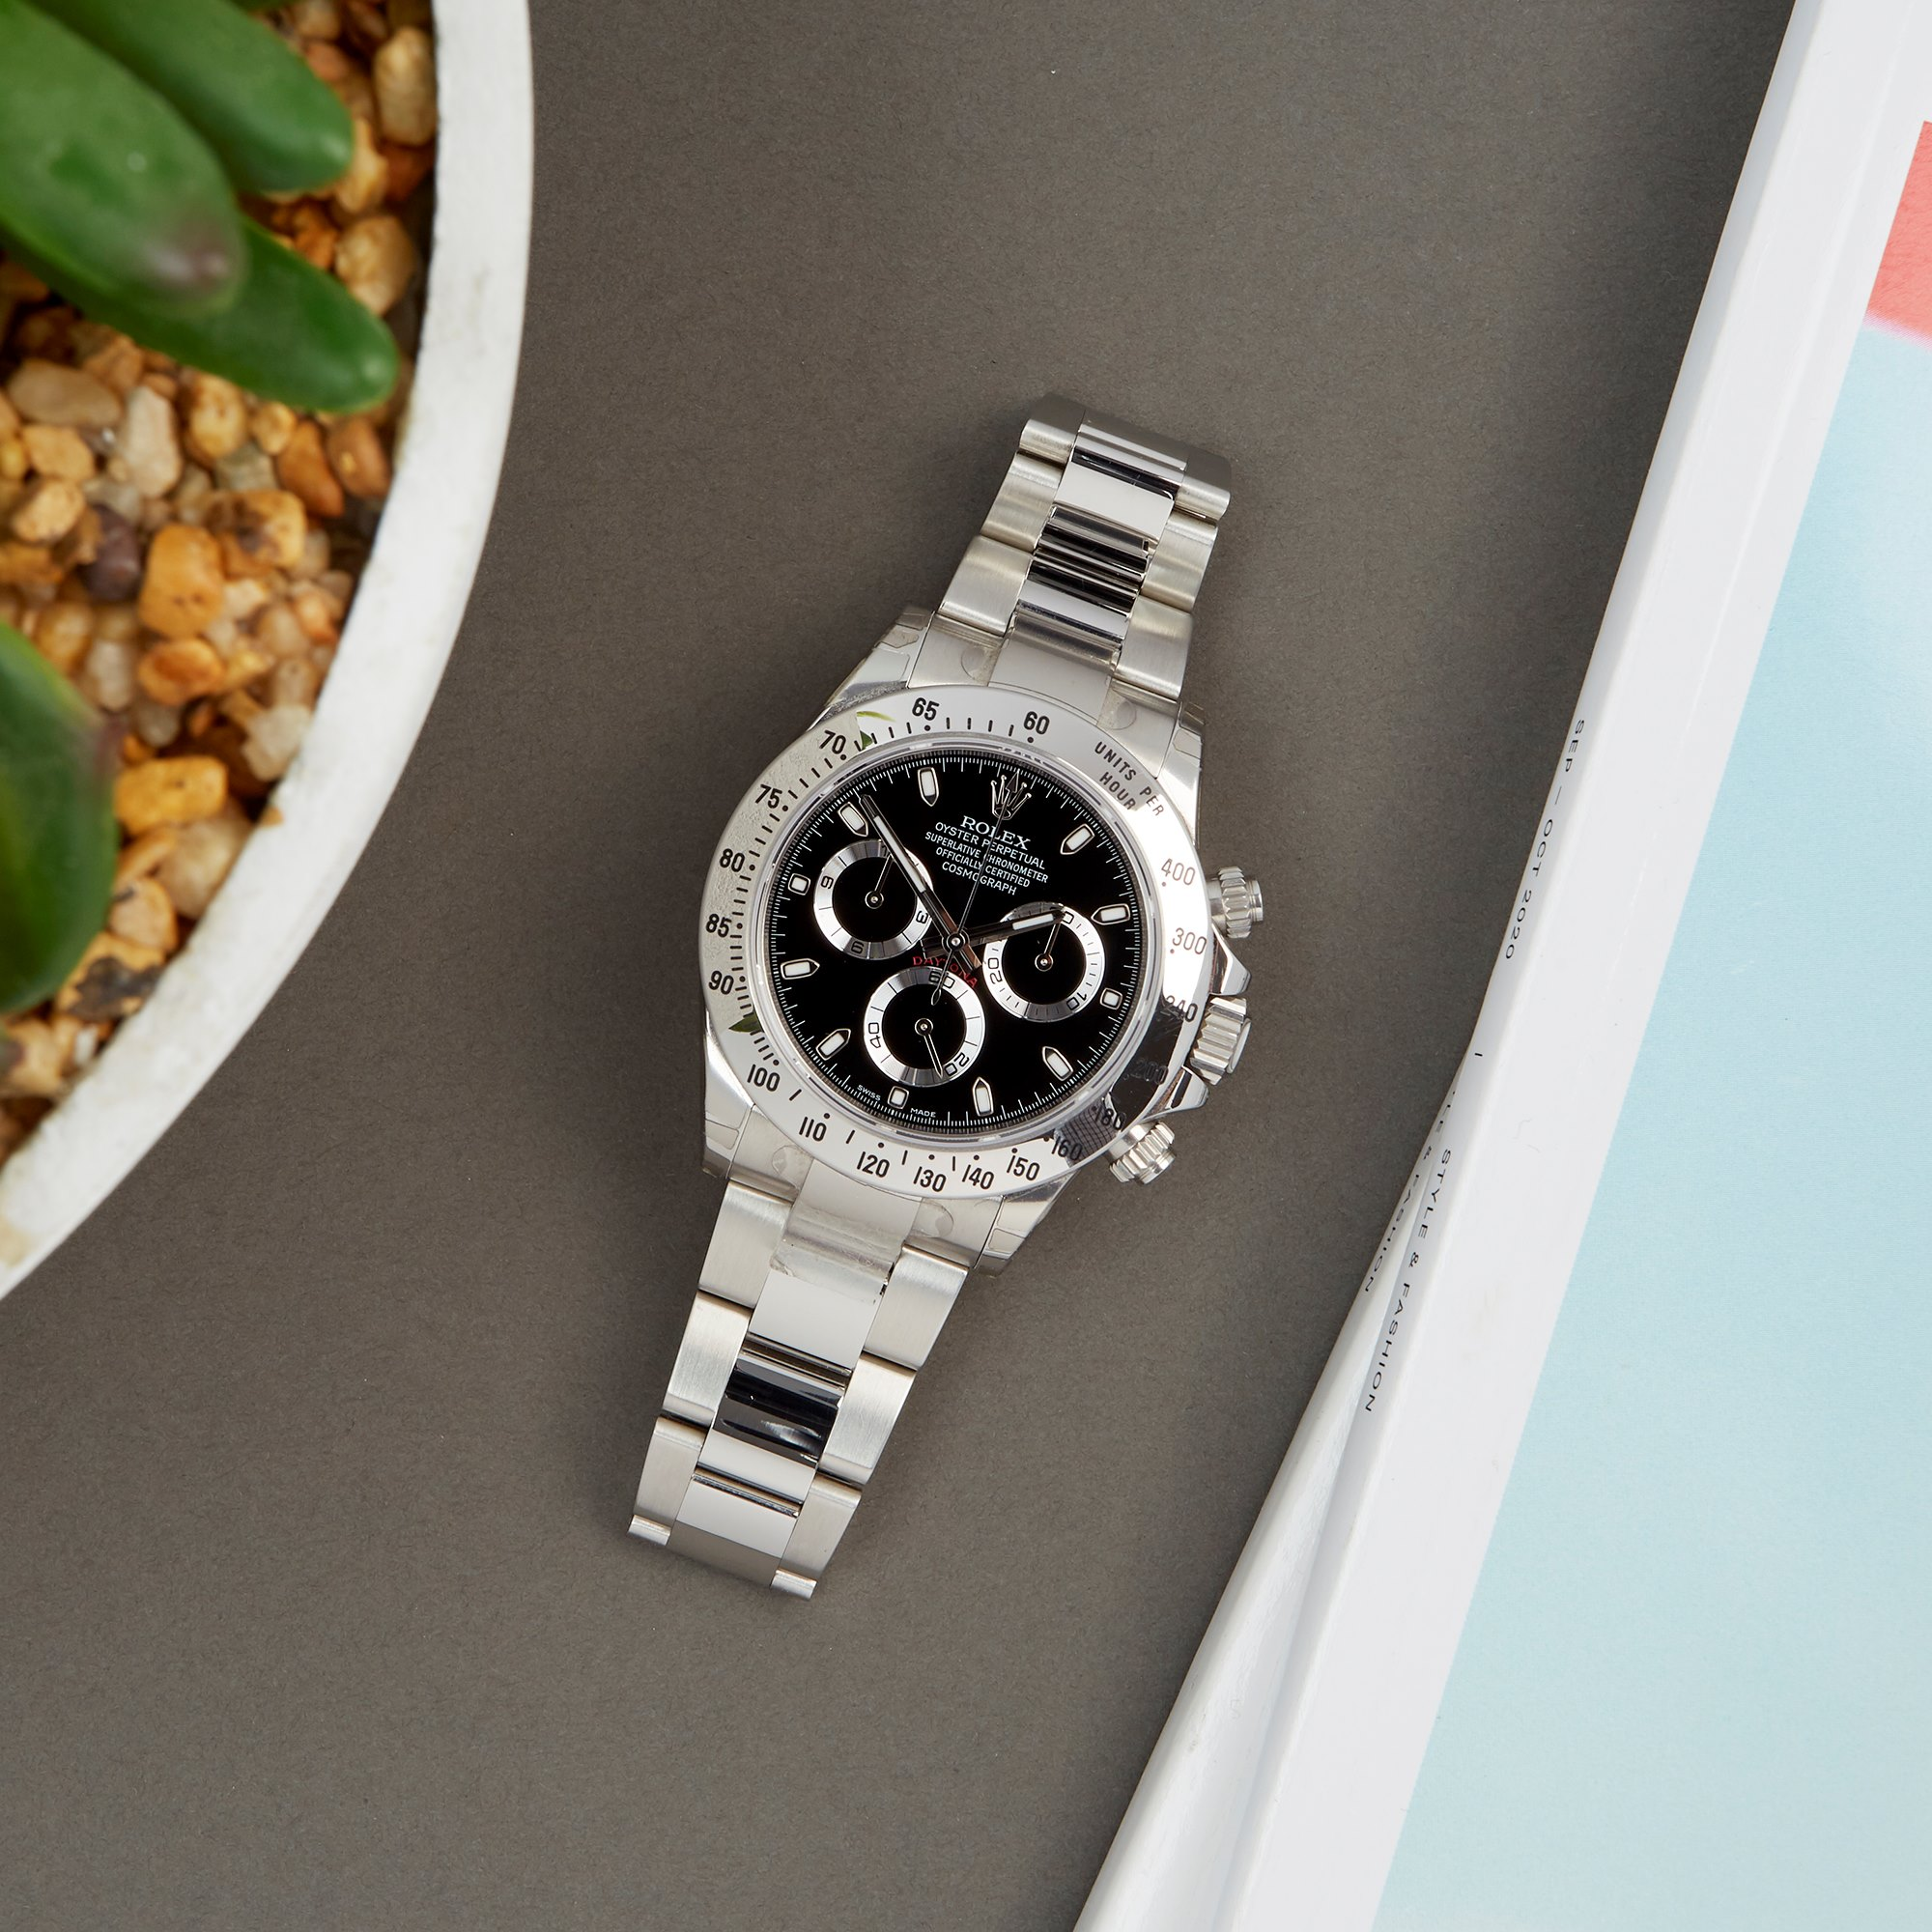 Rolex Daytona Chromalight Chronograph Stickered NOS Roestvrij Staal 116520